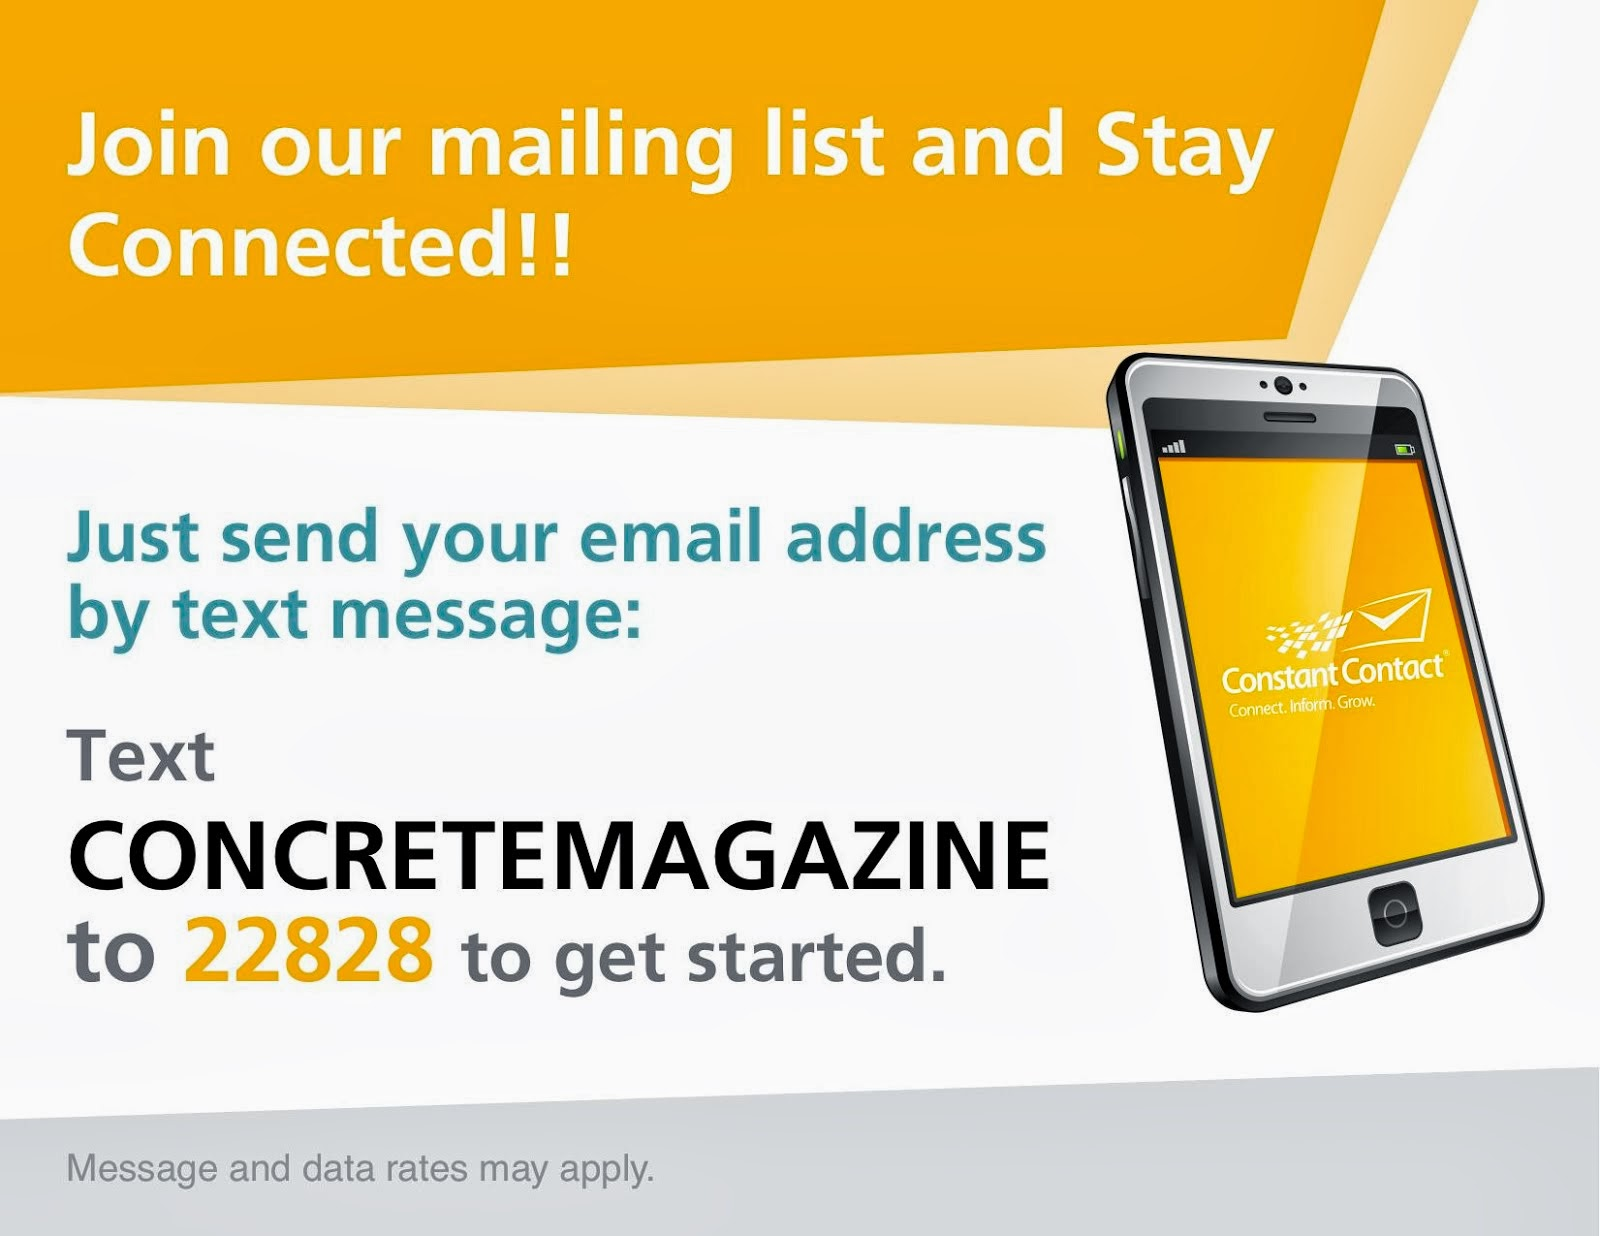 Join the Concrete Mailing list